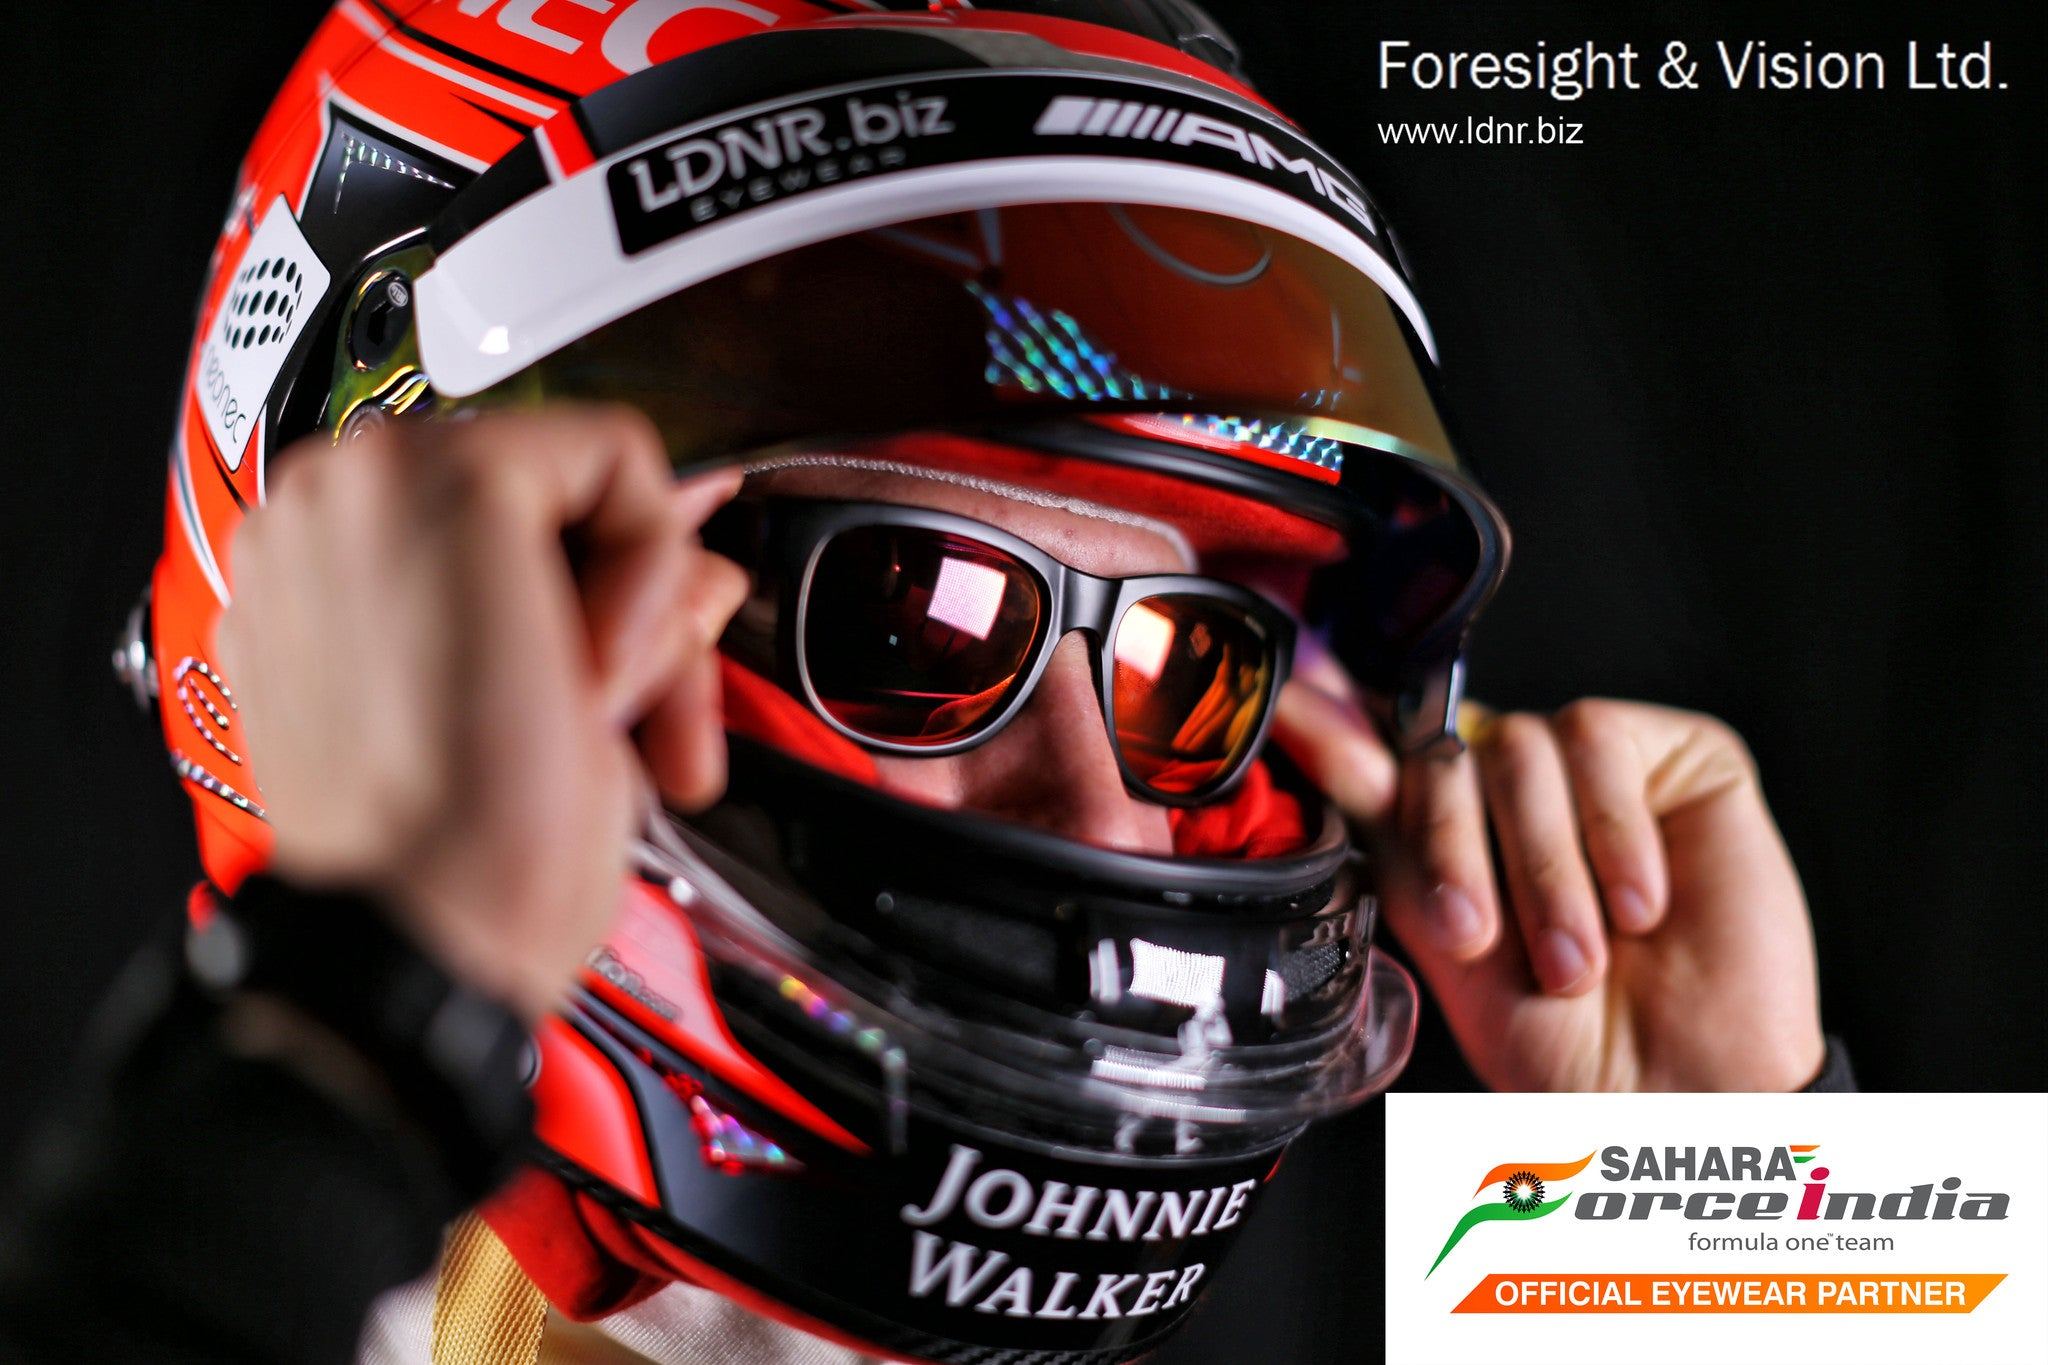 British eyewear leaders Foresight & Vision launch Eye Respect & LDNR into Formula One